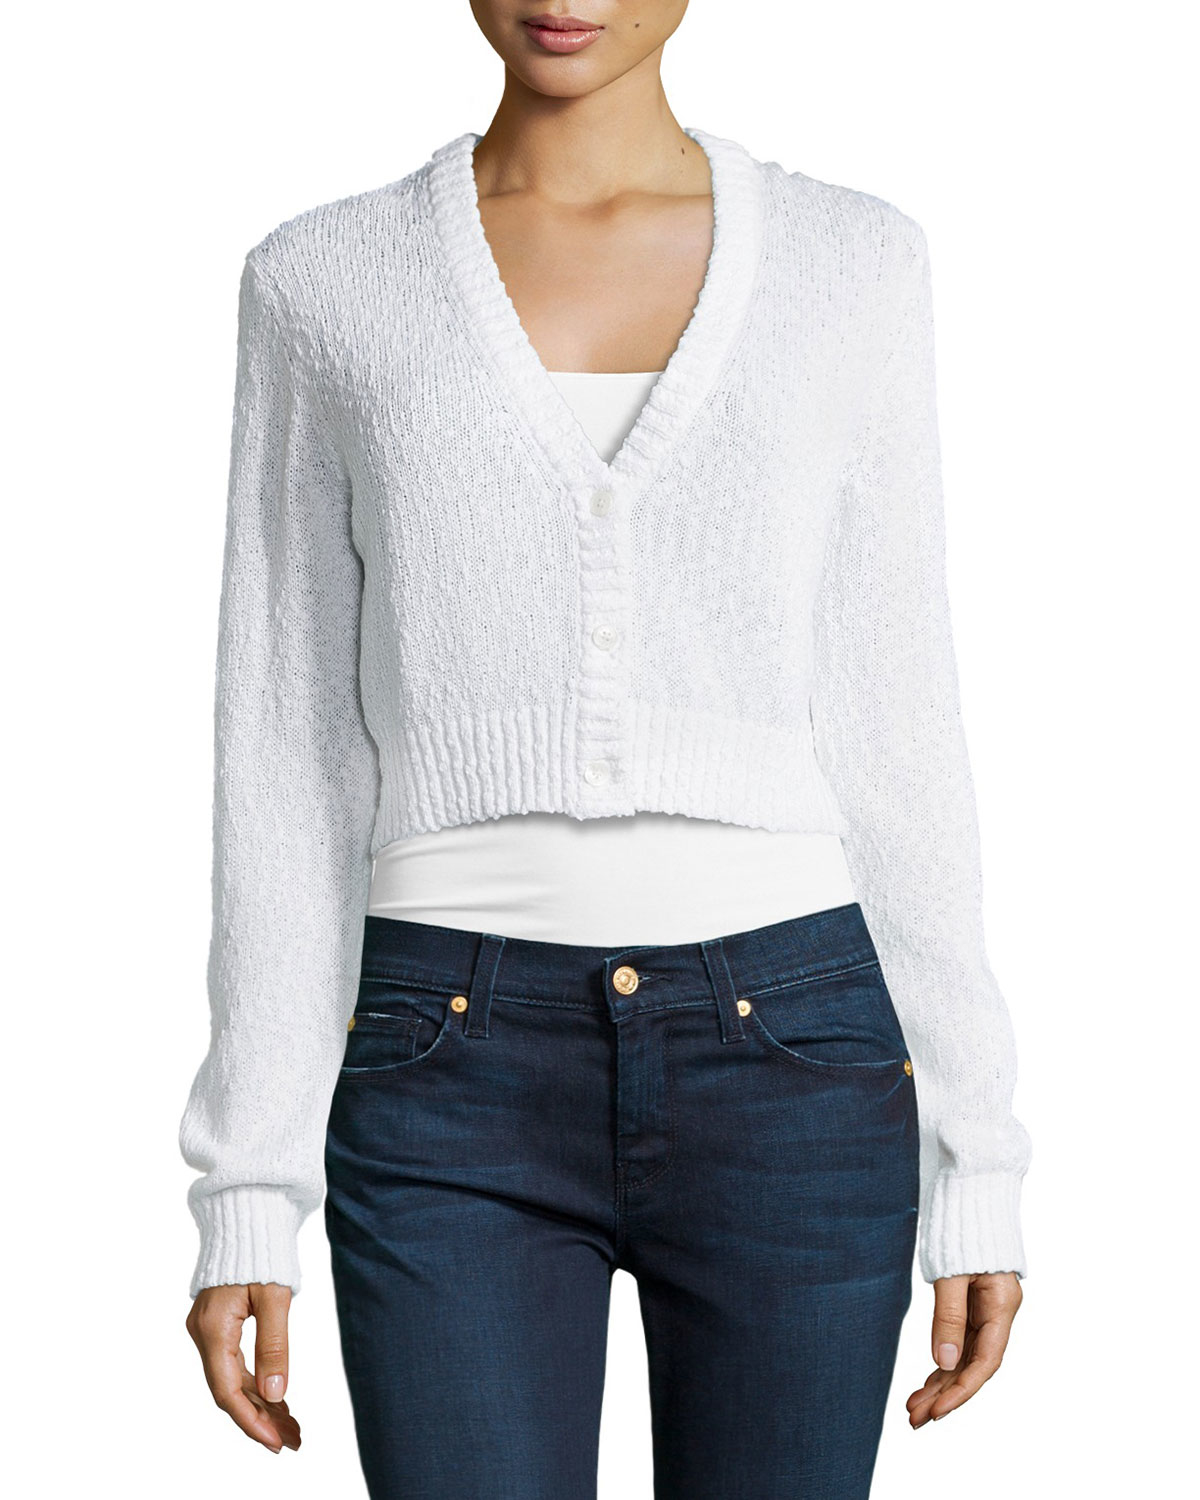 Michael kors Long-Sleeve Cropped Cardigan in White | Lyst